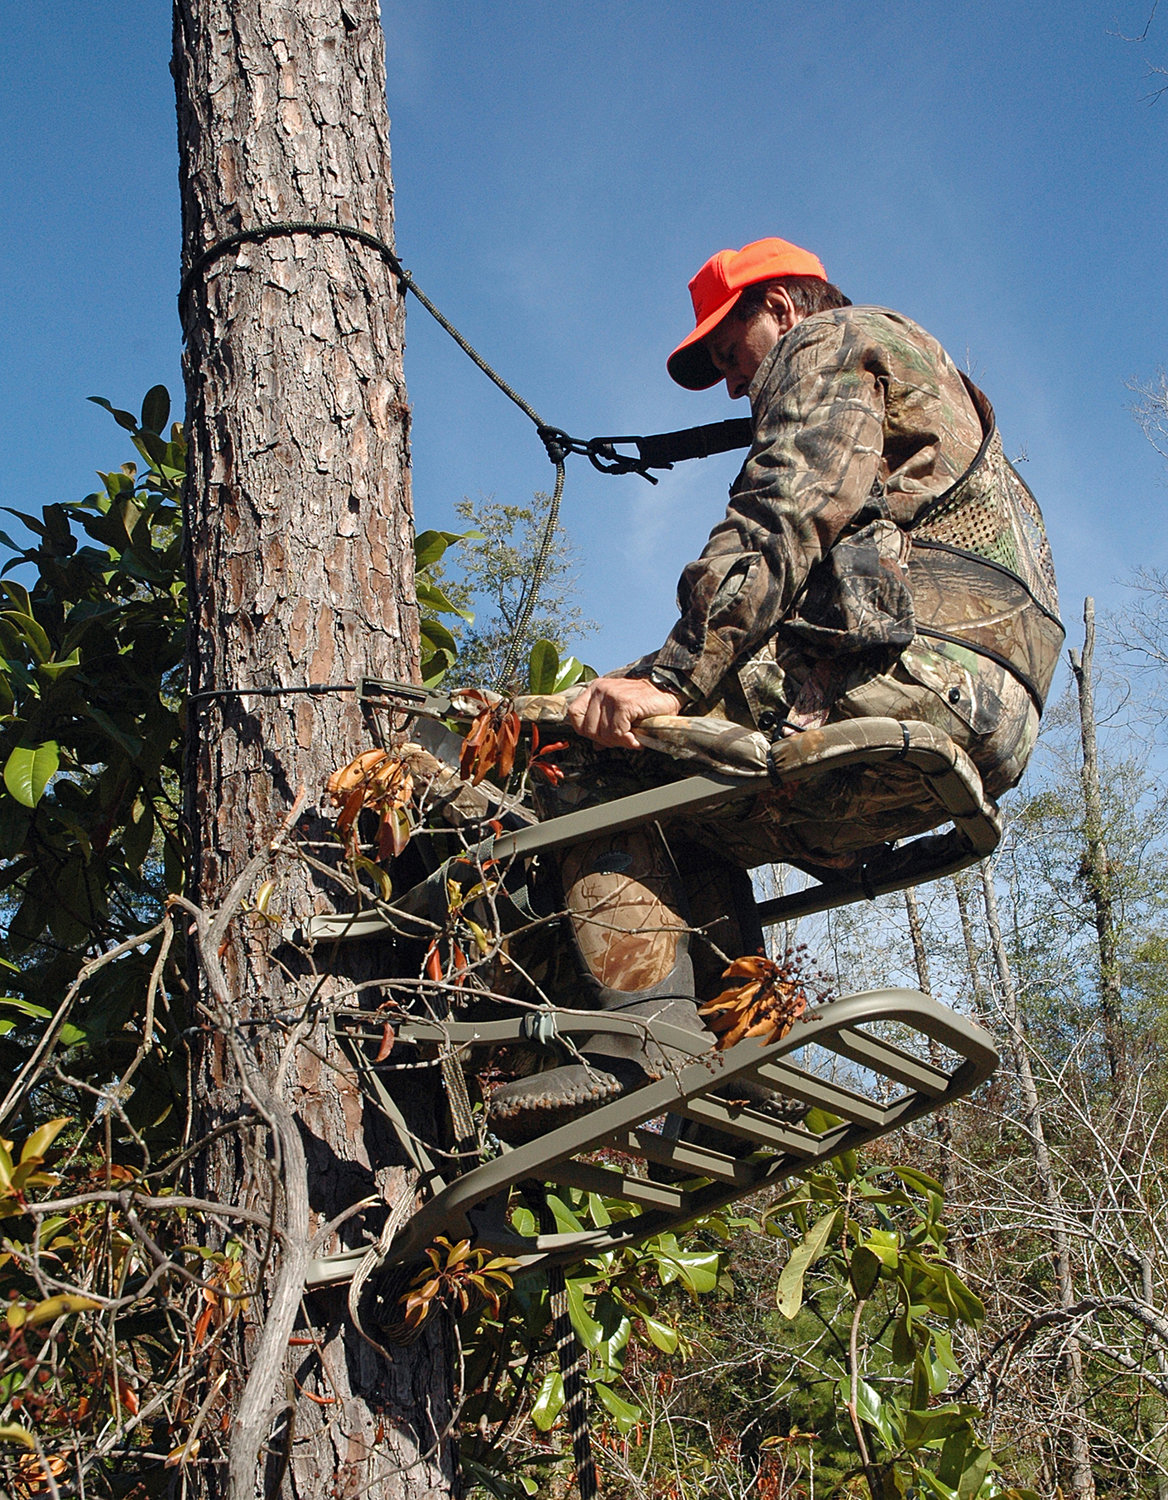 Safety harnesses should be worn and be attached the tree at all times when climbing or descending.